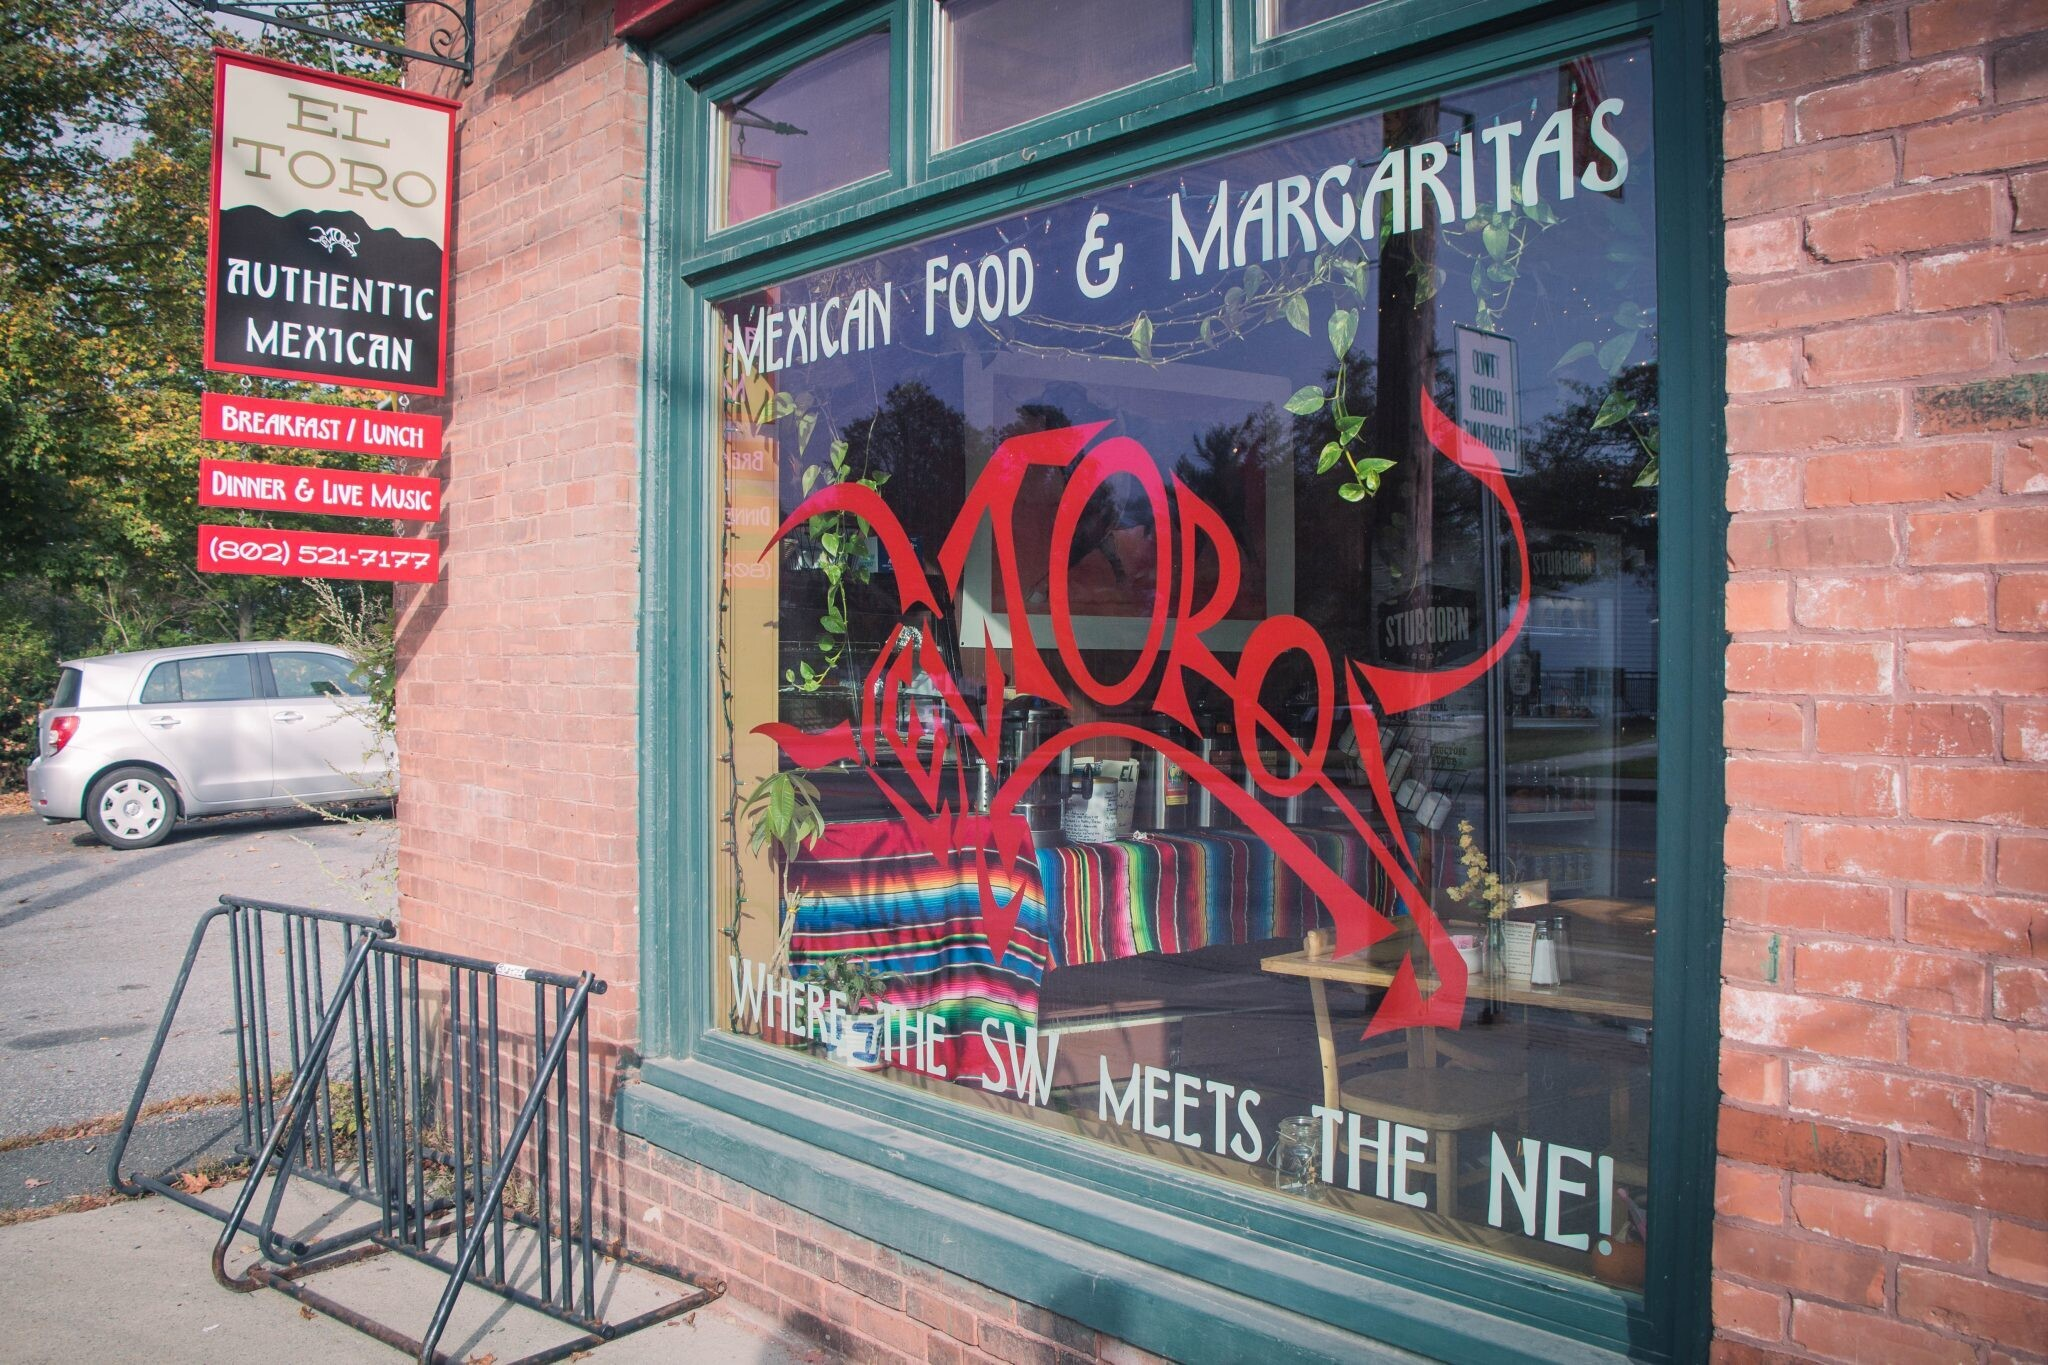 mexican food margaritas window graphics